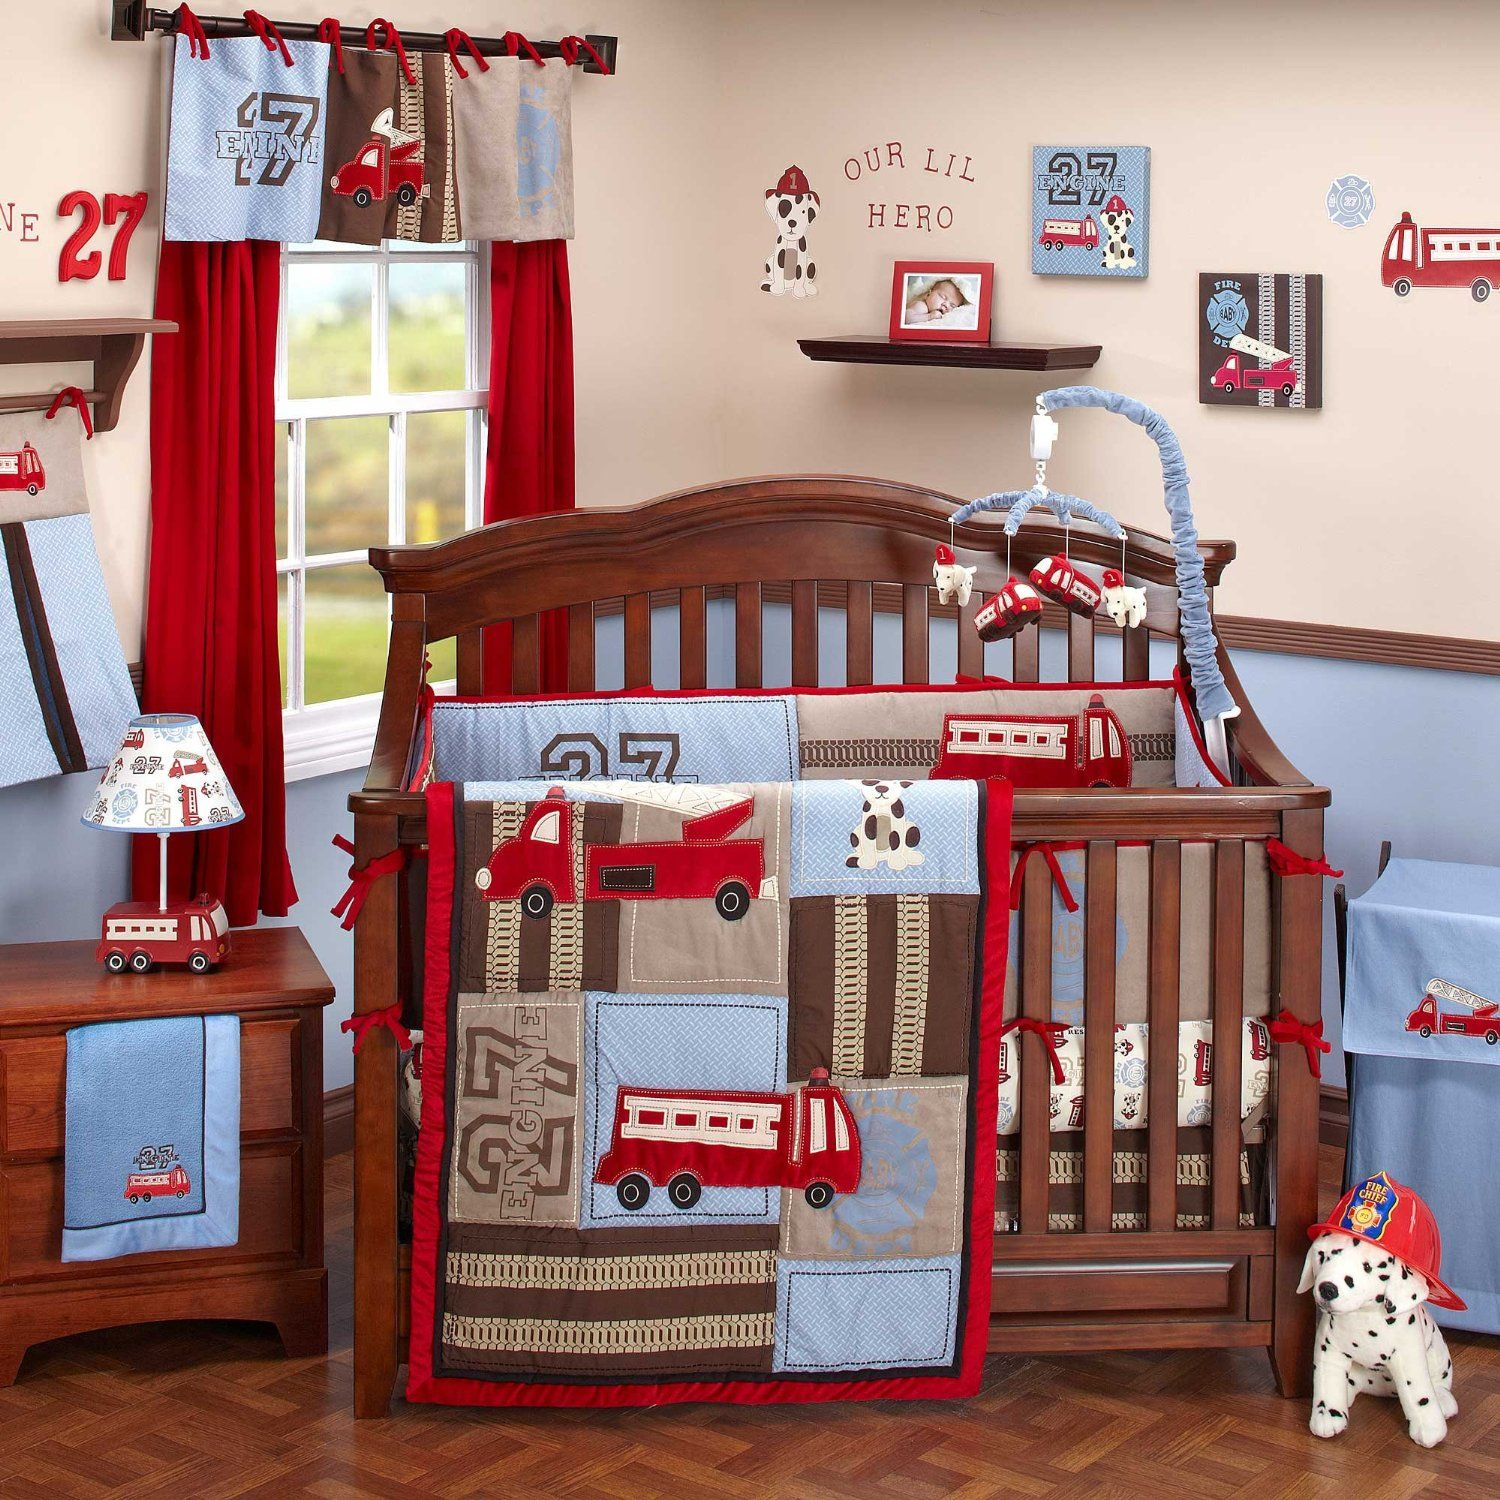 Firefighter Fire Truck Crib Bedding Nursery Decor